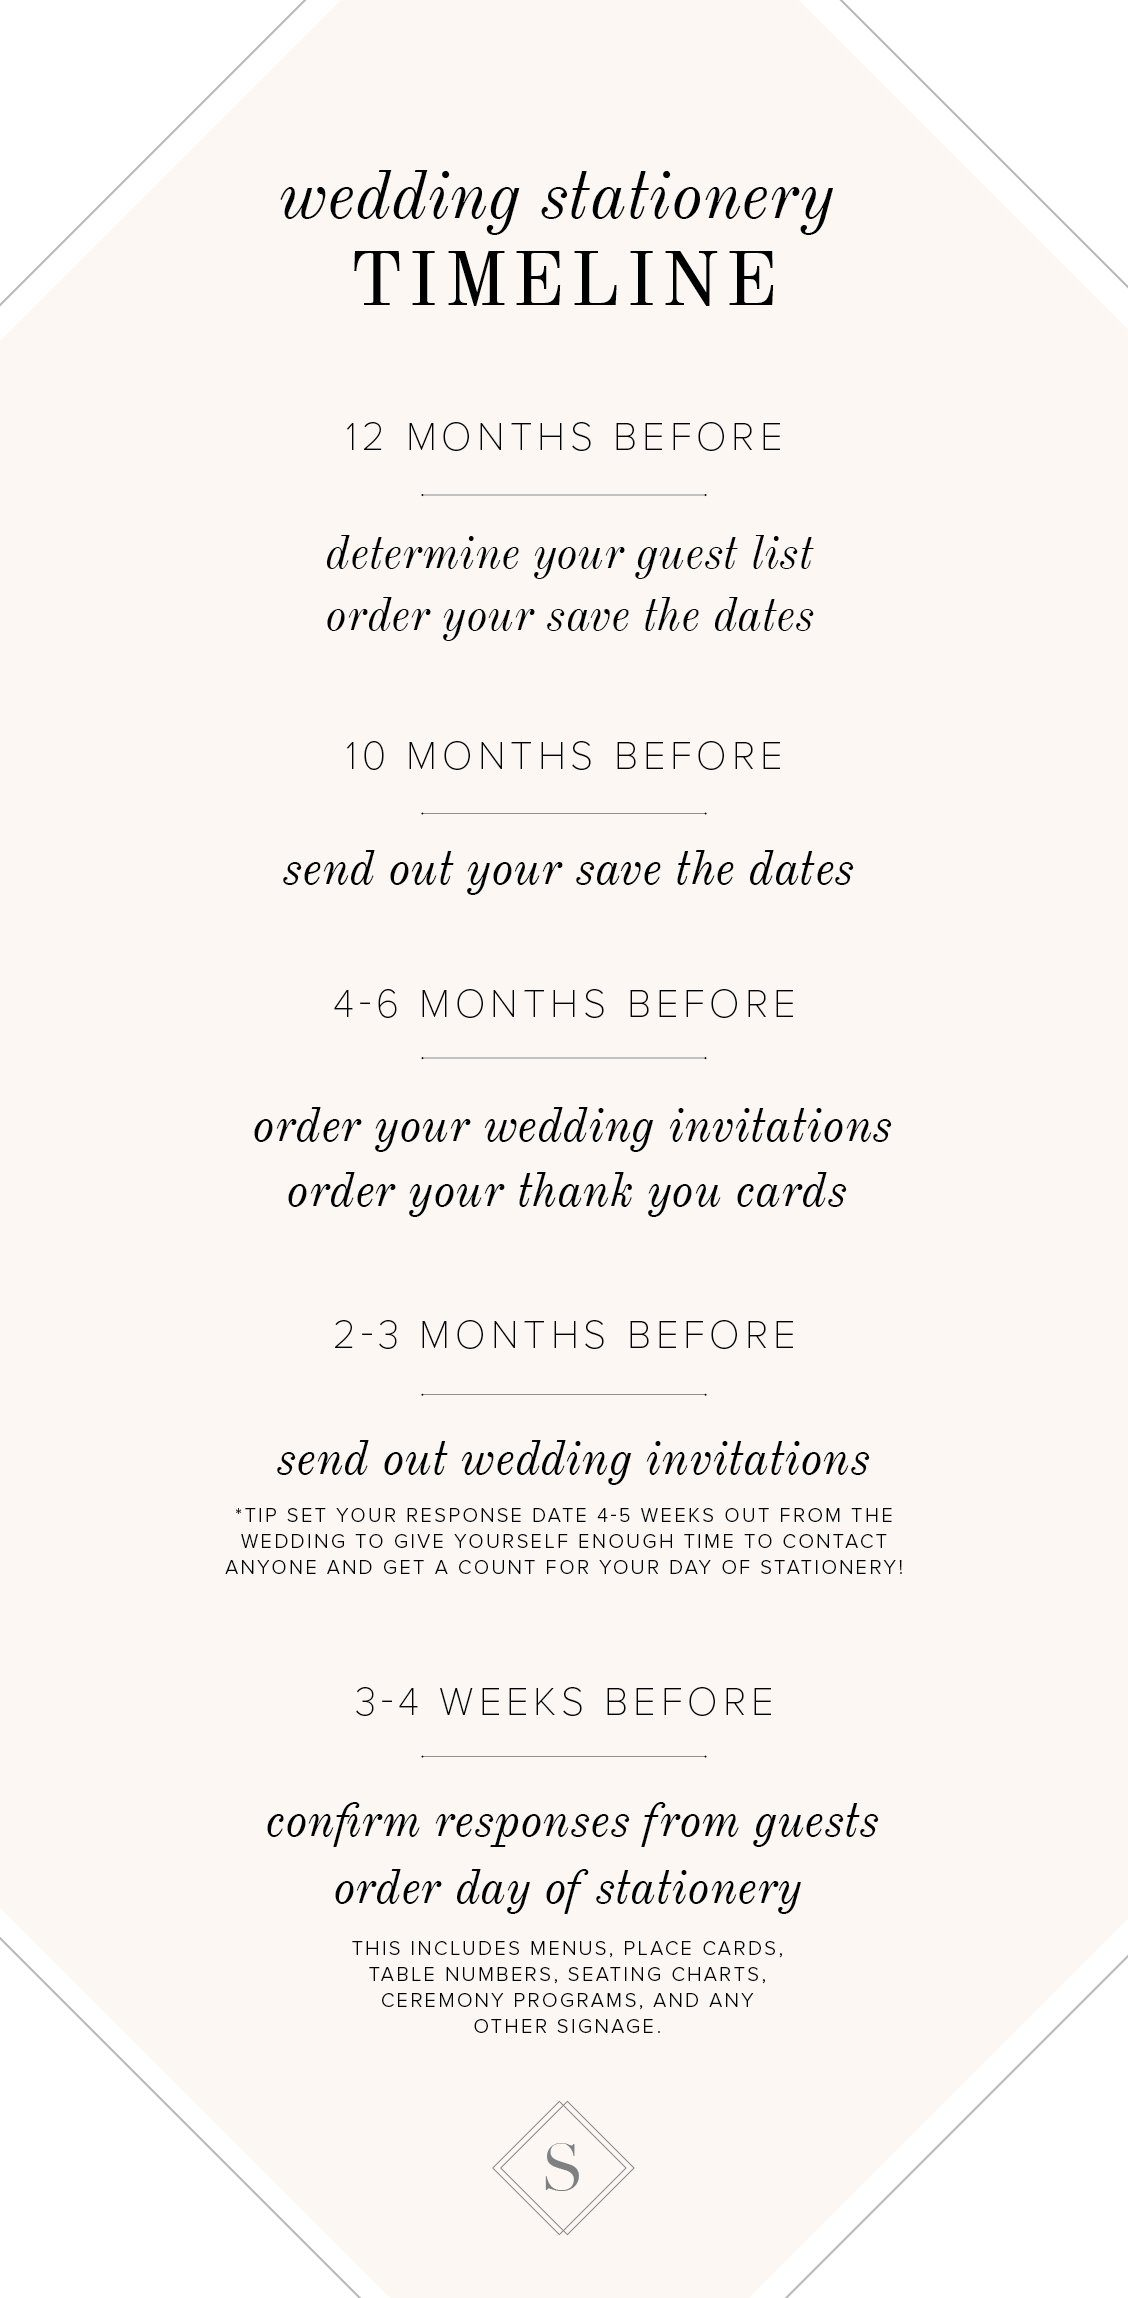 Wedding Stationery Timeline